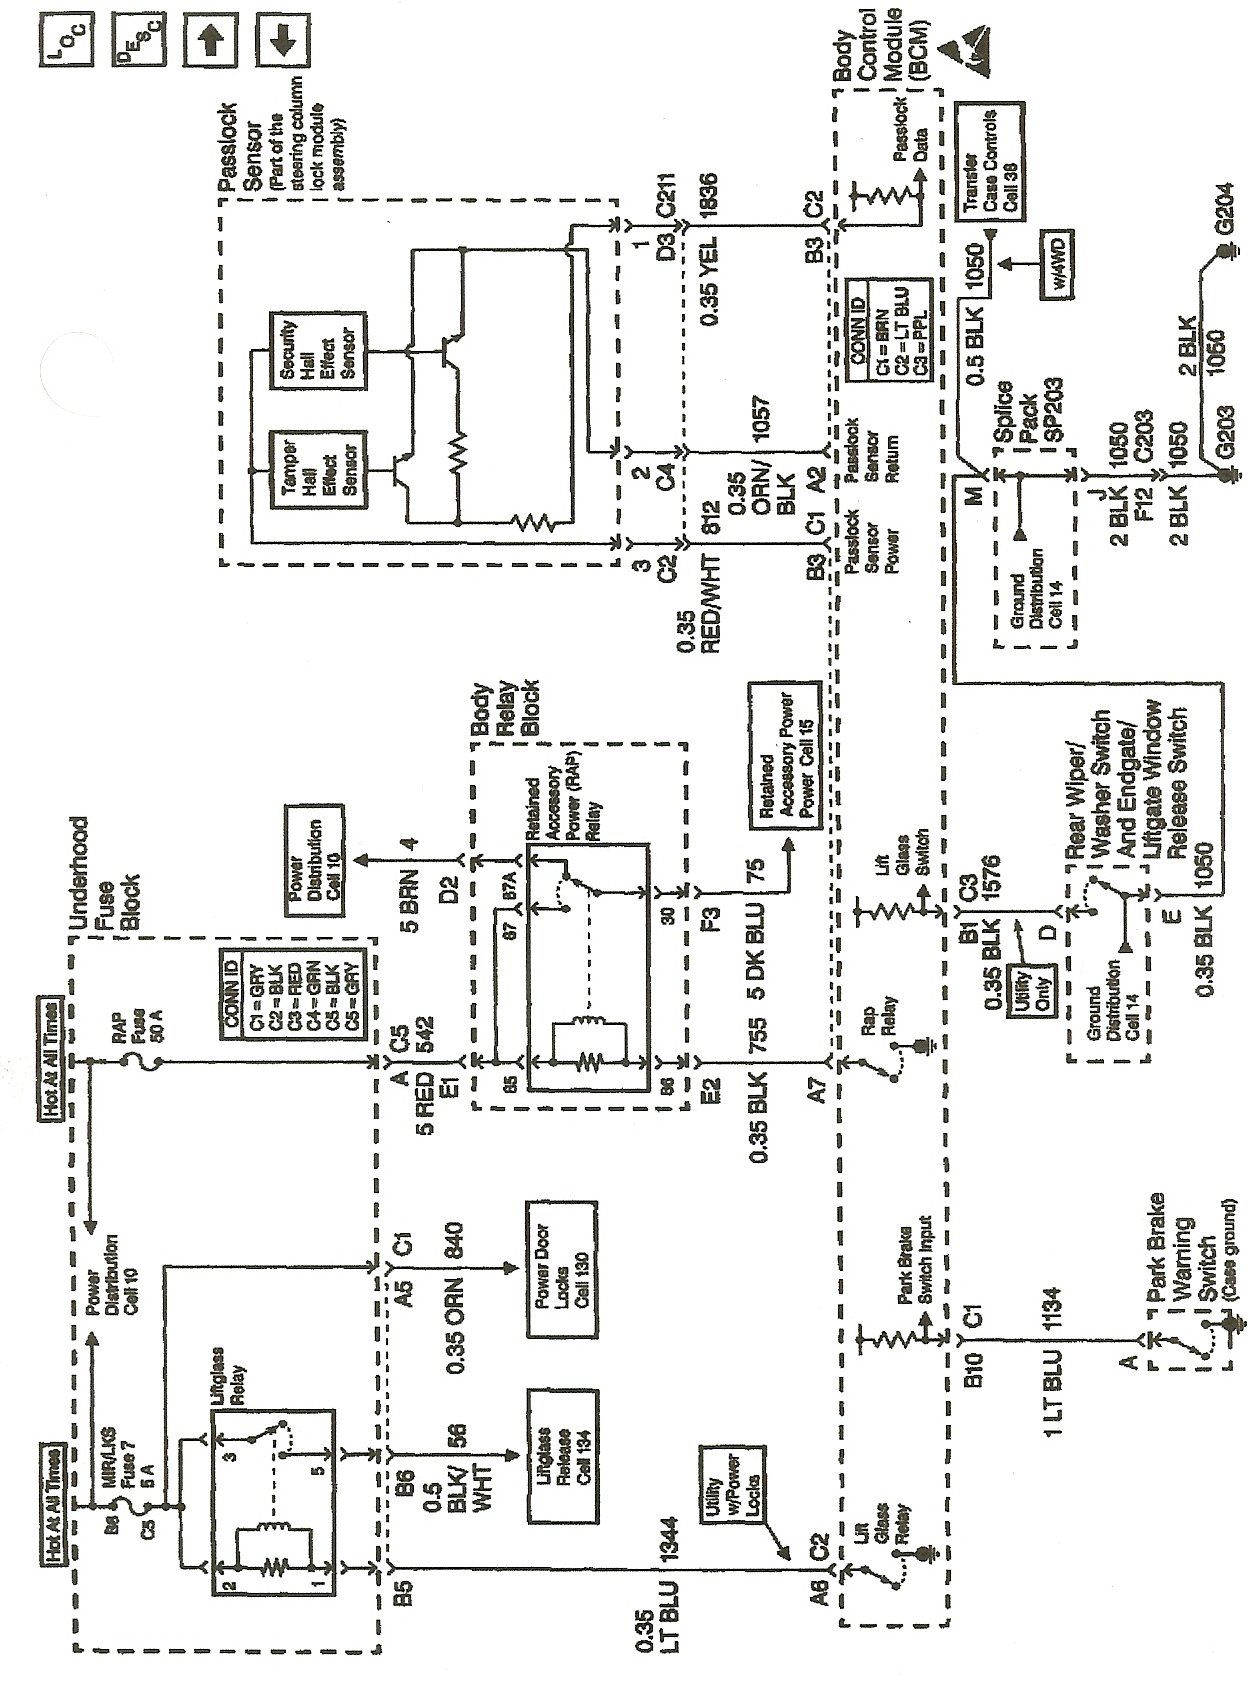 i need a bcm module wiring diagram for a 20056 chevy